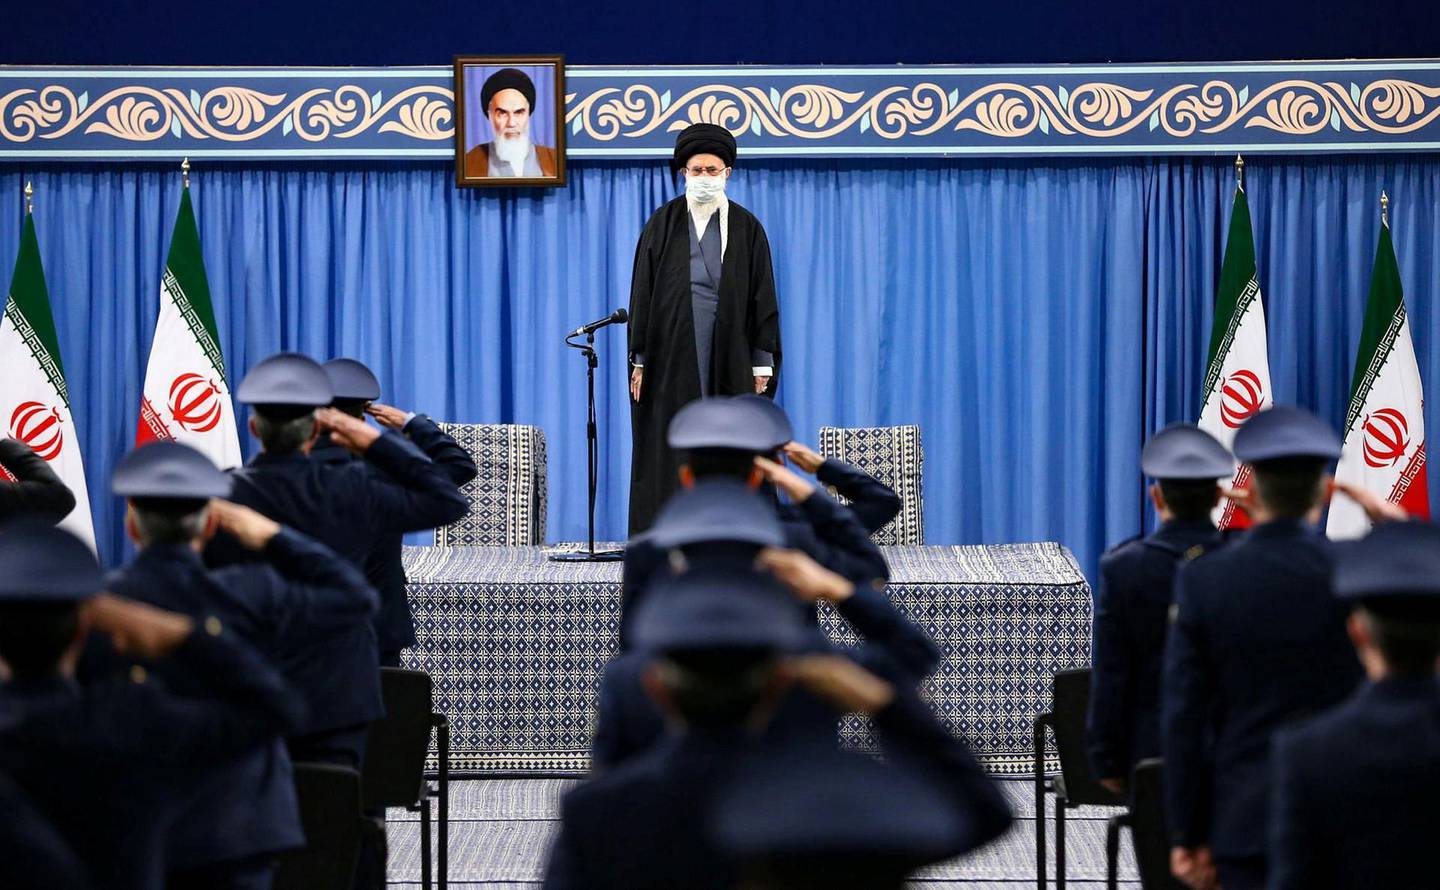 """A handout picture provided by the office of Iran's Supreme Leader Ayatollah Ali Khamenei on February 7, 2021, shows him delivering a speech in front of commanders of the air force,days ahead of the 42nd anniversary marking the victory of the Islamic revolution.  - === RESTRICTED TO EDITORIAL USE - MANDATORY CREDIT """"AFP PHOTO / HO / KHAMENEI.IR"""" - NO MARKETING NO ADVERTISING CAMPAIGNS - DISTRIBUTED AS A SERVICE TO CLIENTS ===  / AFP / KHAMENEI.IR / - / === RESTRICTED TO EDITORIAL USE - MANDATORY CREDIT """"AFP PHOTO / HO / KHAMENEI.IR"""" - NO MARKETING NO ADVERTISING CAMPAIGNS - DISTRIBUTED AS A SERVICE TO CLIENTS ==="""